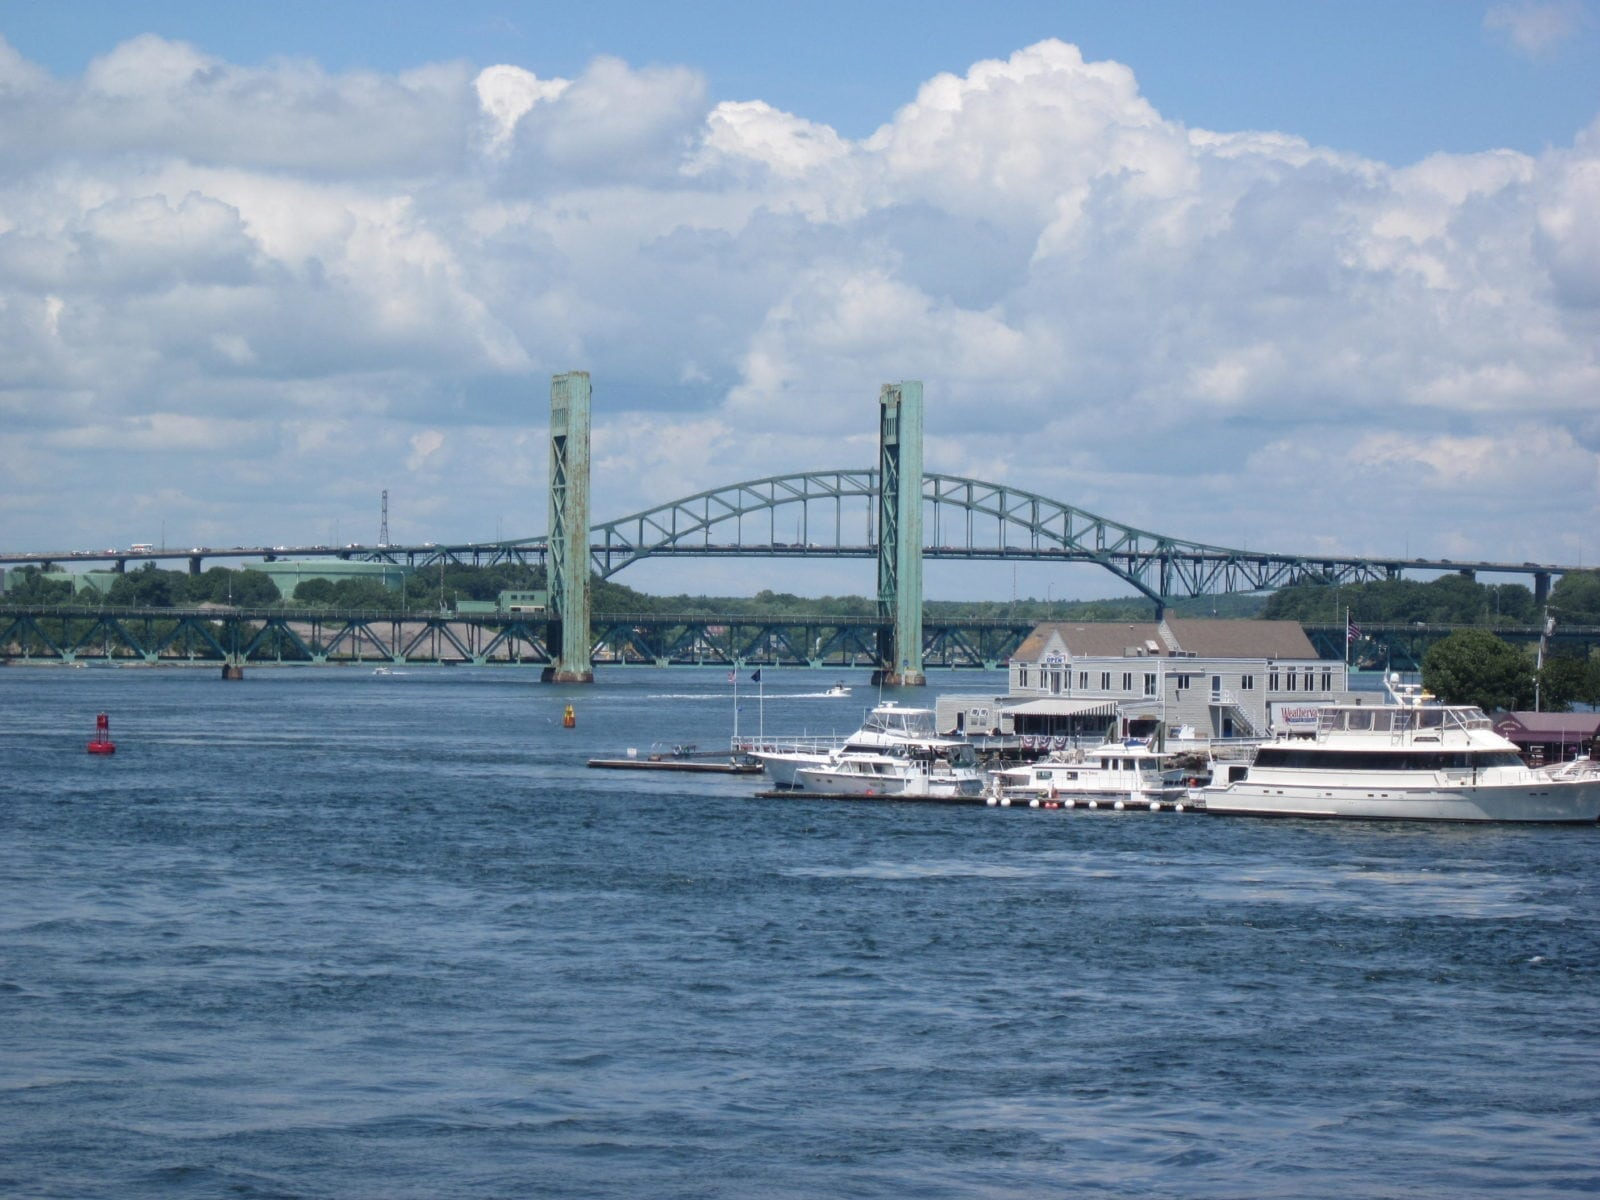 Portsmouth Bridge in Concord, New Hampshire